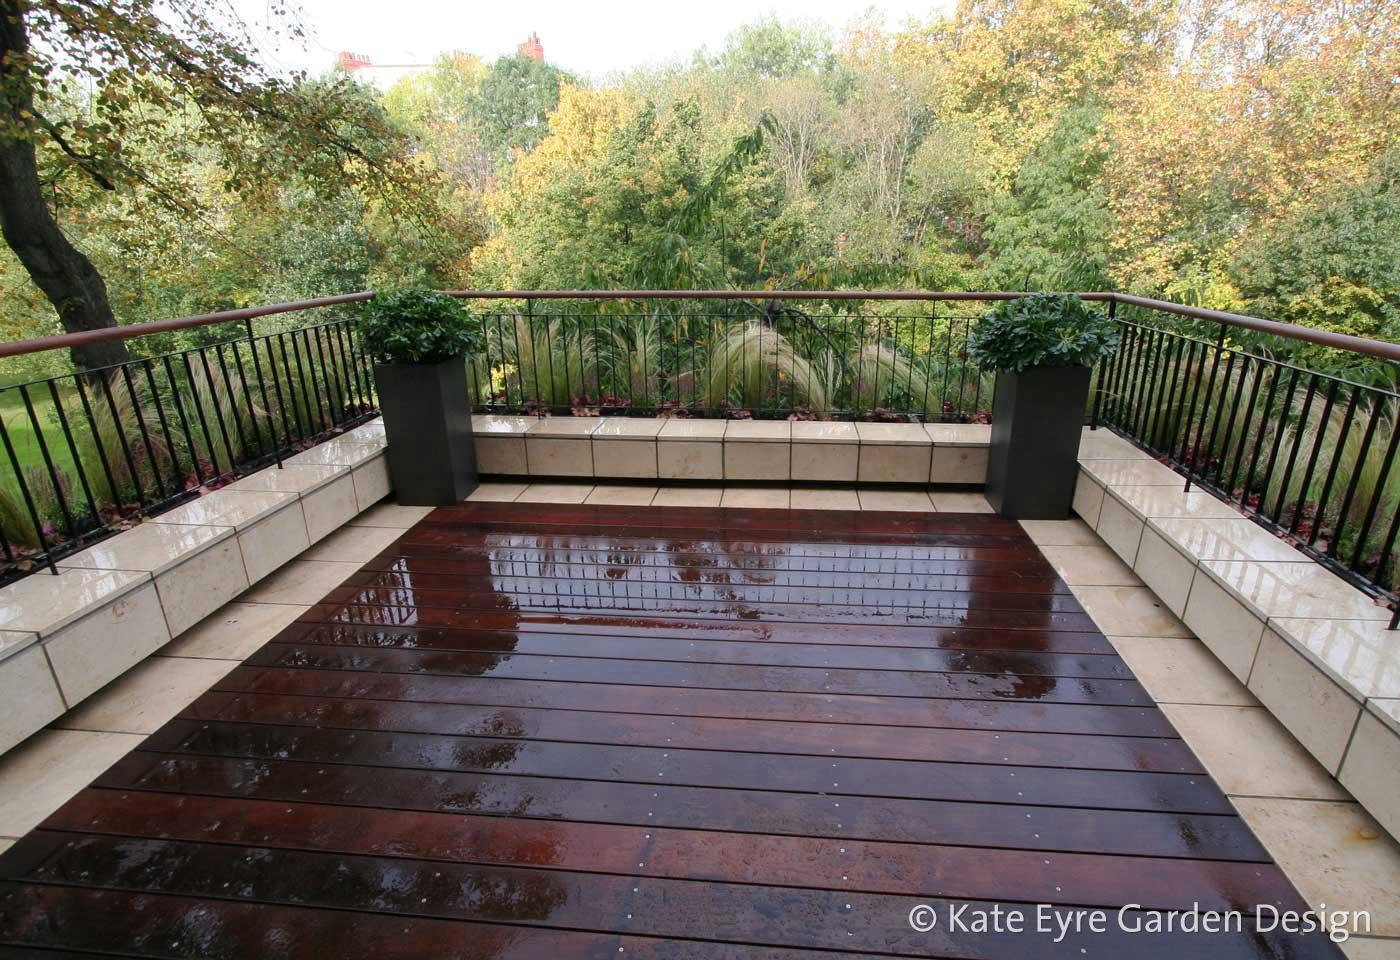 A roof garden design in Notting Hill, West London, 5